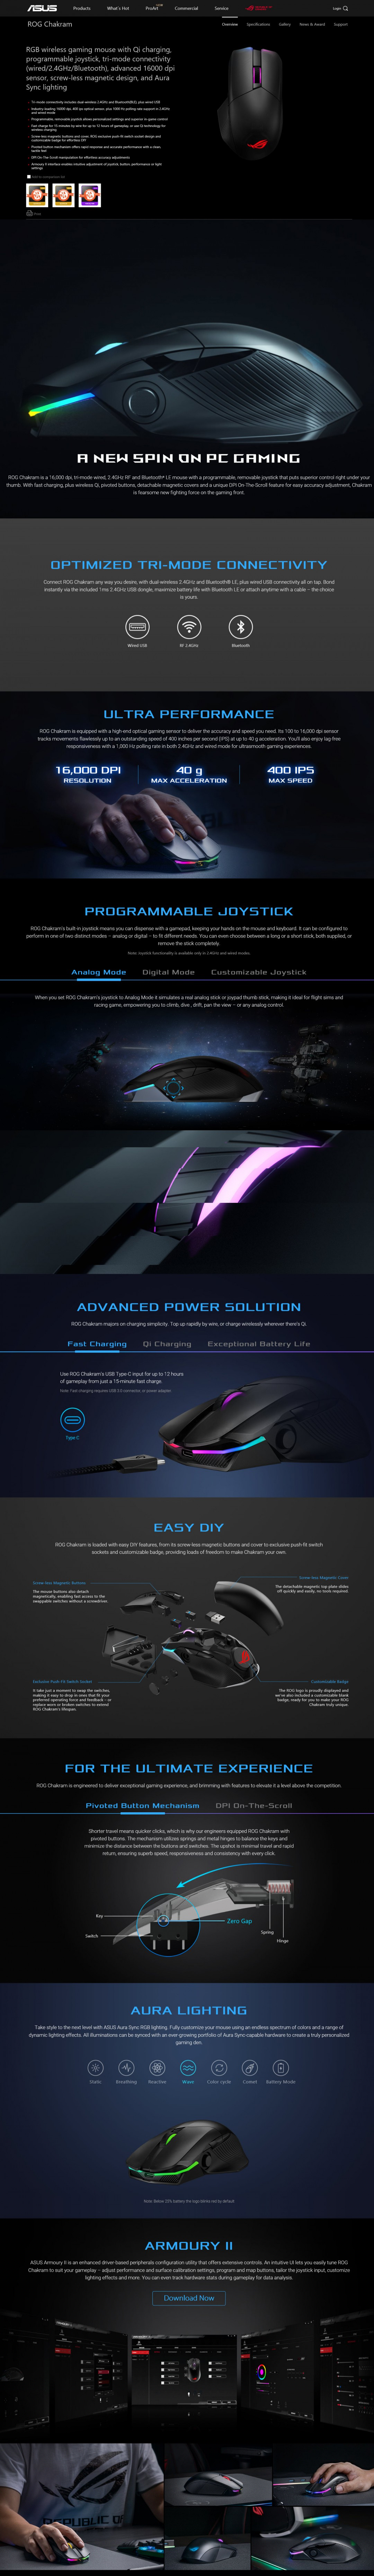 2020 01 09 21 59 56 ASUS ROG CHAKRAM RGB Wireless Gaming Mouse Review